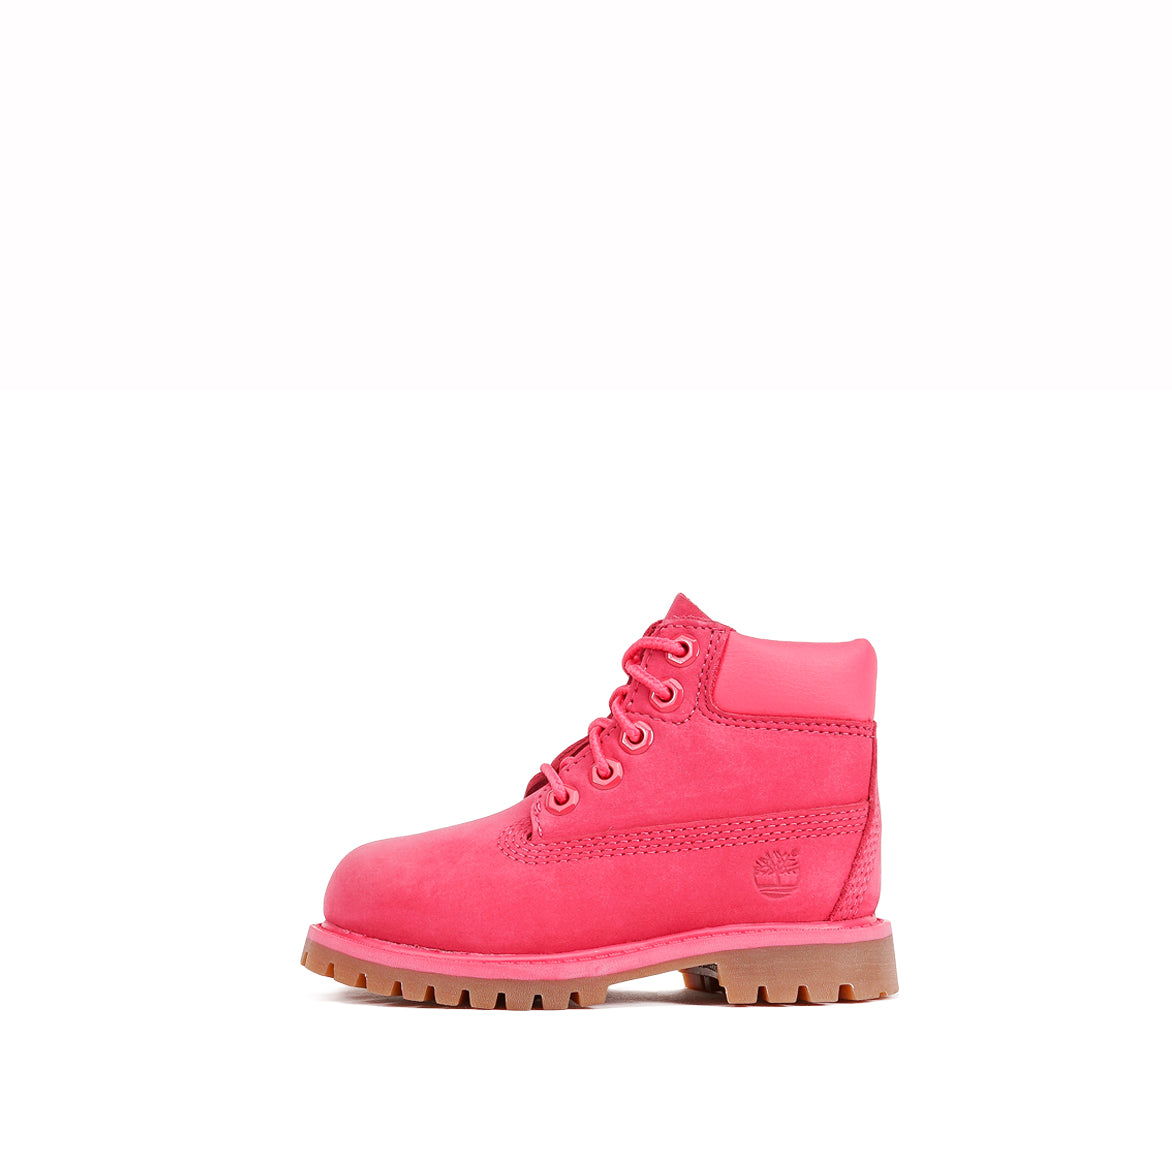 "6"" PREMIUM WATERPROOF BOOT (TODDLER) - PINK"